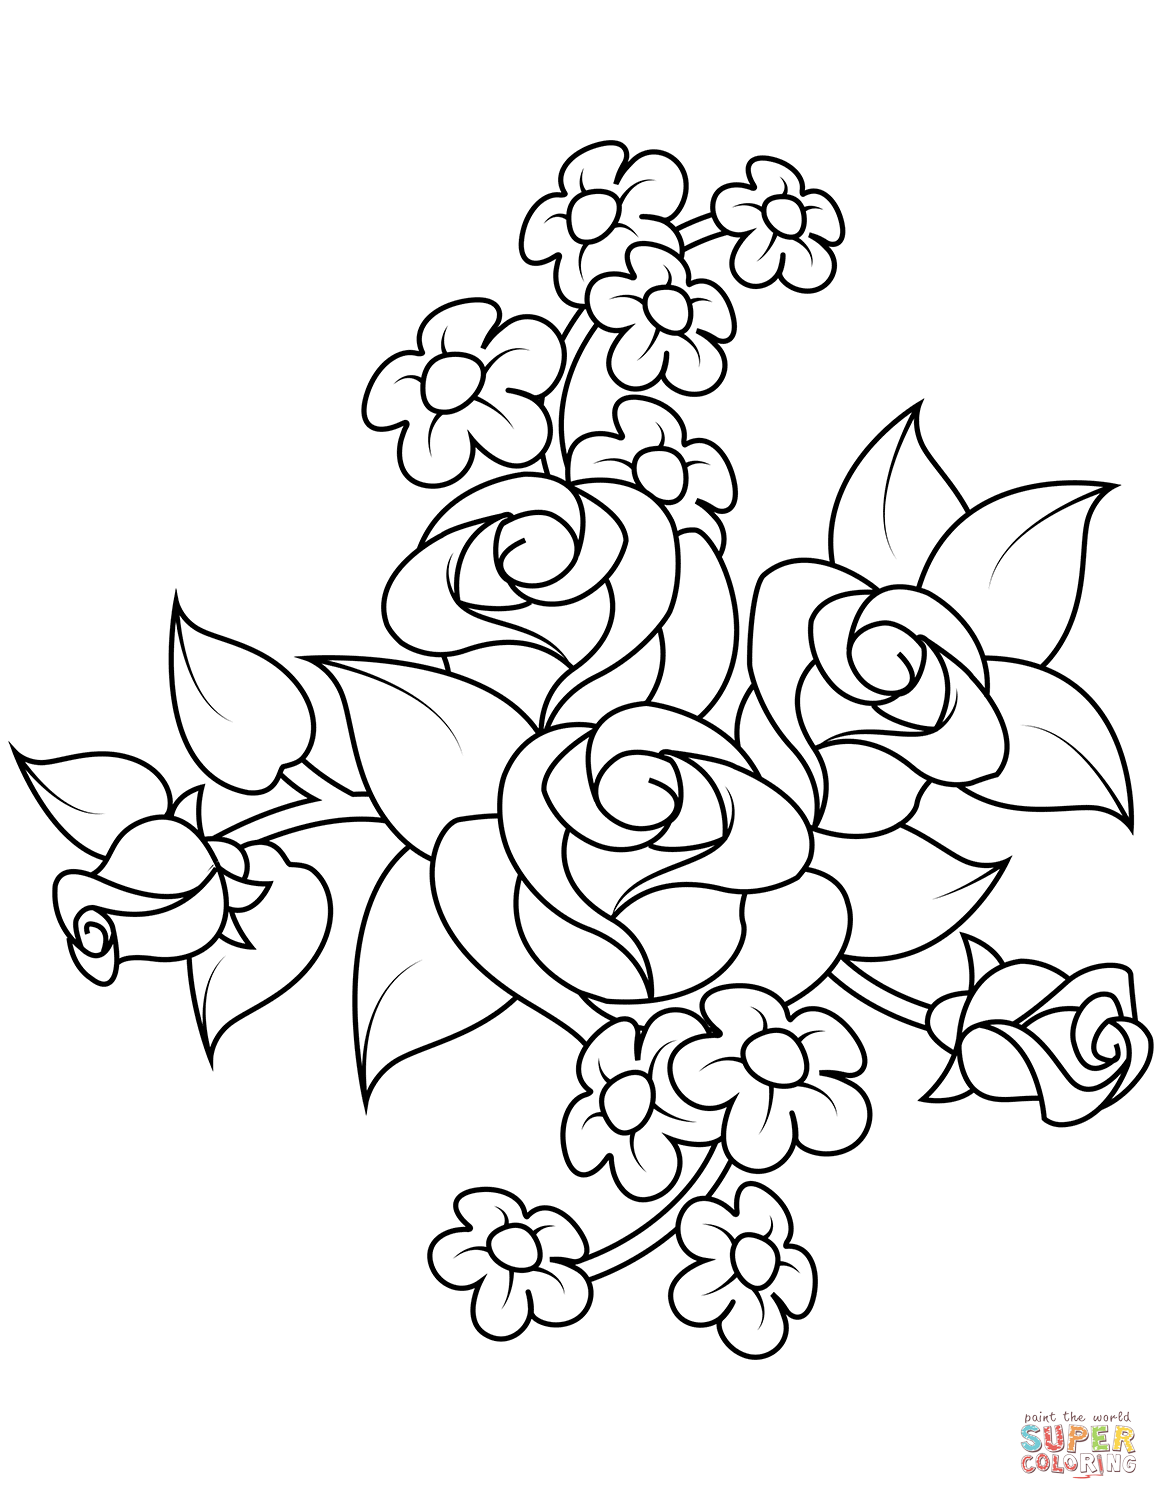 coloring sheet rose bouquet of roses coloring page free printable coloring pages coloring sheet rose